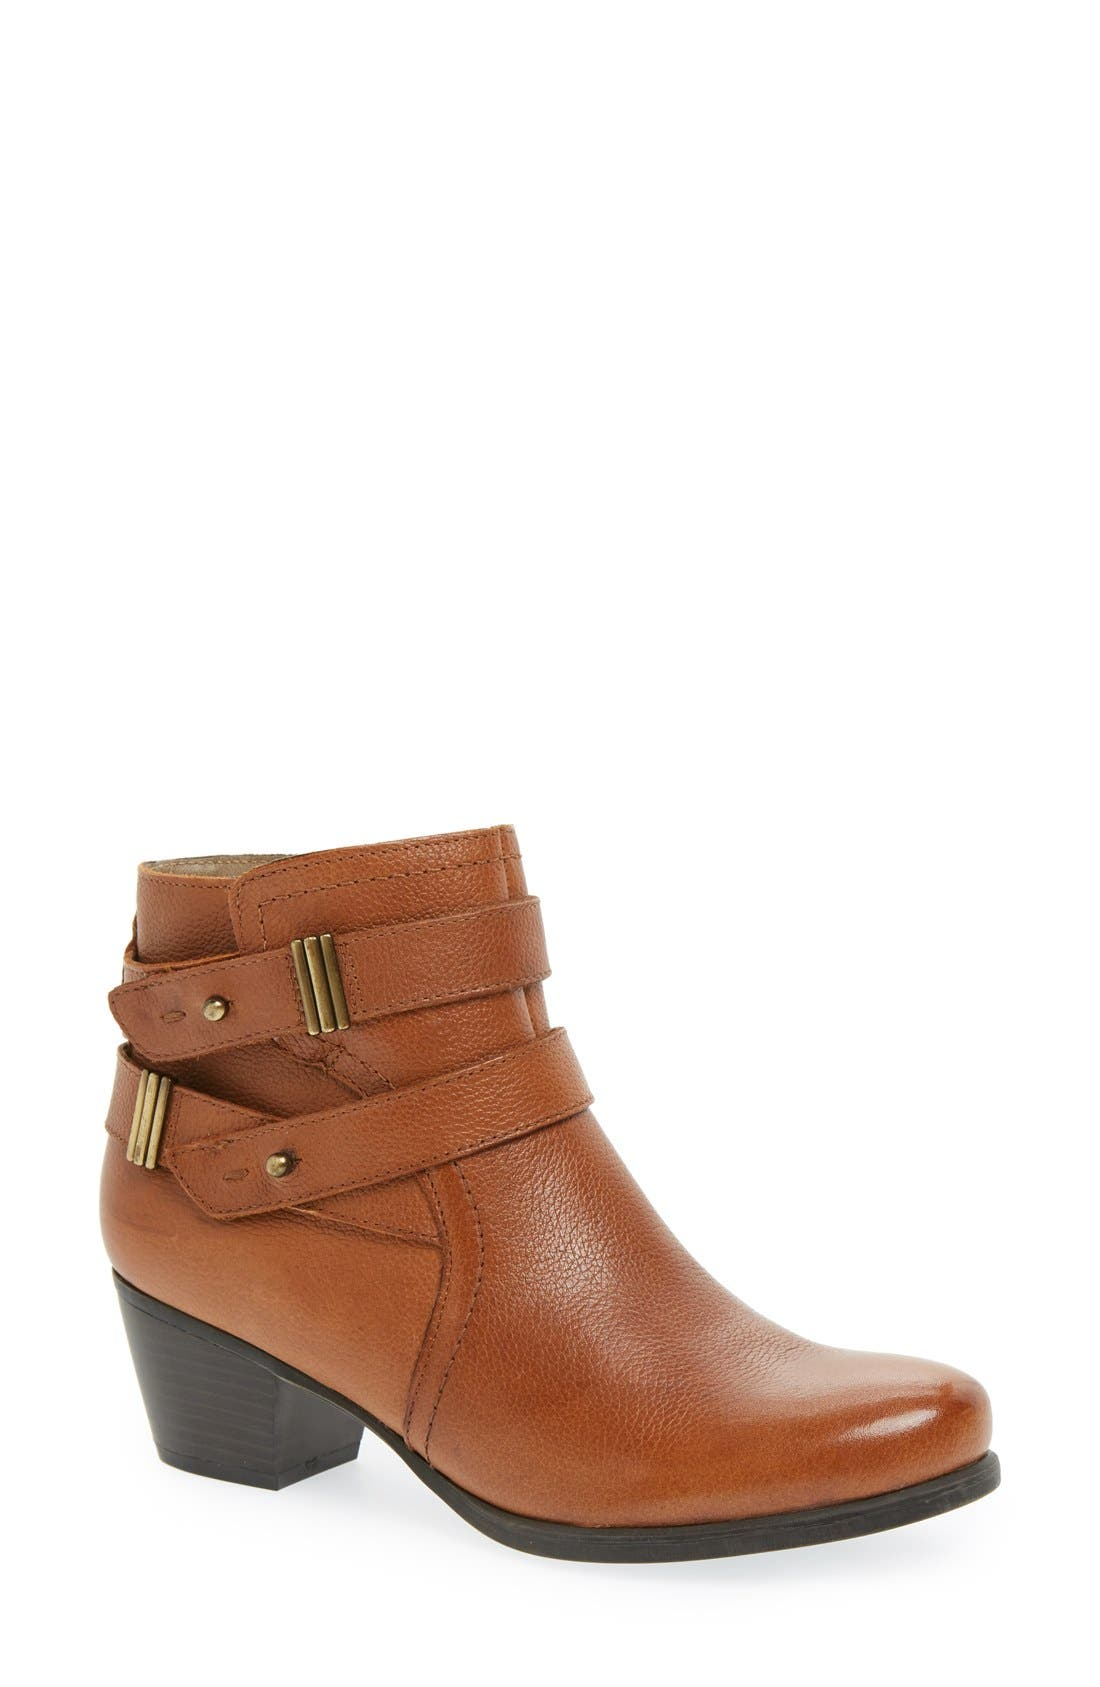 Main Image - Naturalizer 'Kepler' Block Heel Bootie (Women)